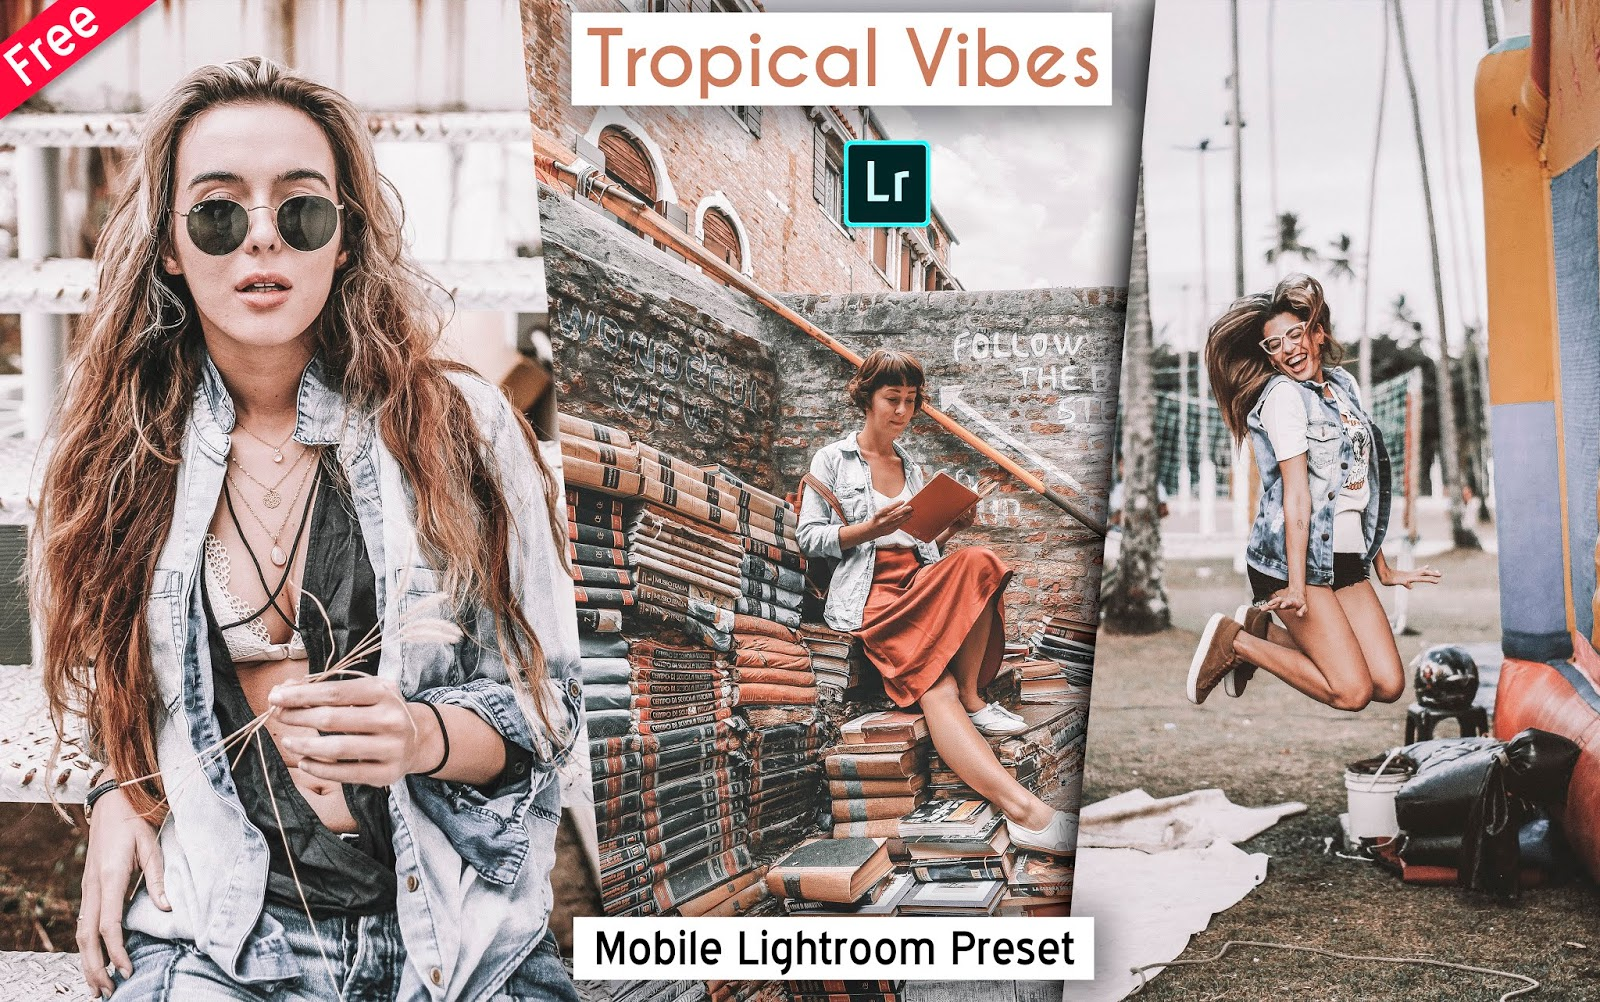 Download Tropical Vibes Mobile Lightroom Preset for Free | How to Edit Your Photos with Tropical Vibes Effect in Mobile Lightroom App